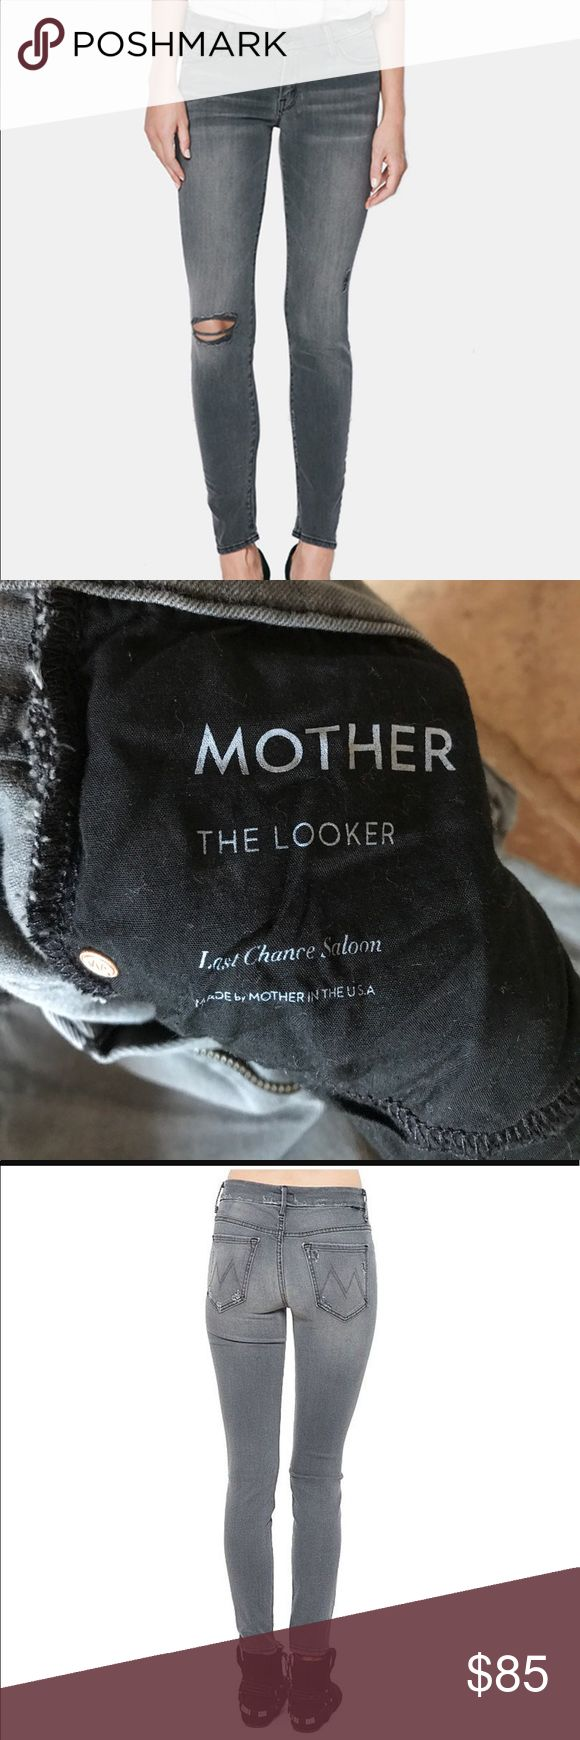 Mother the looker last chance saloon Mother jeans the looker last chance saloon. Any questions please ask. MOTHER Jeans Skinny